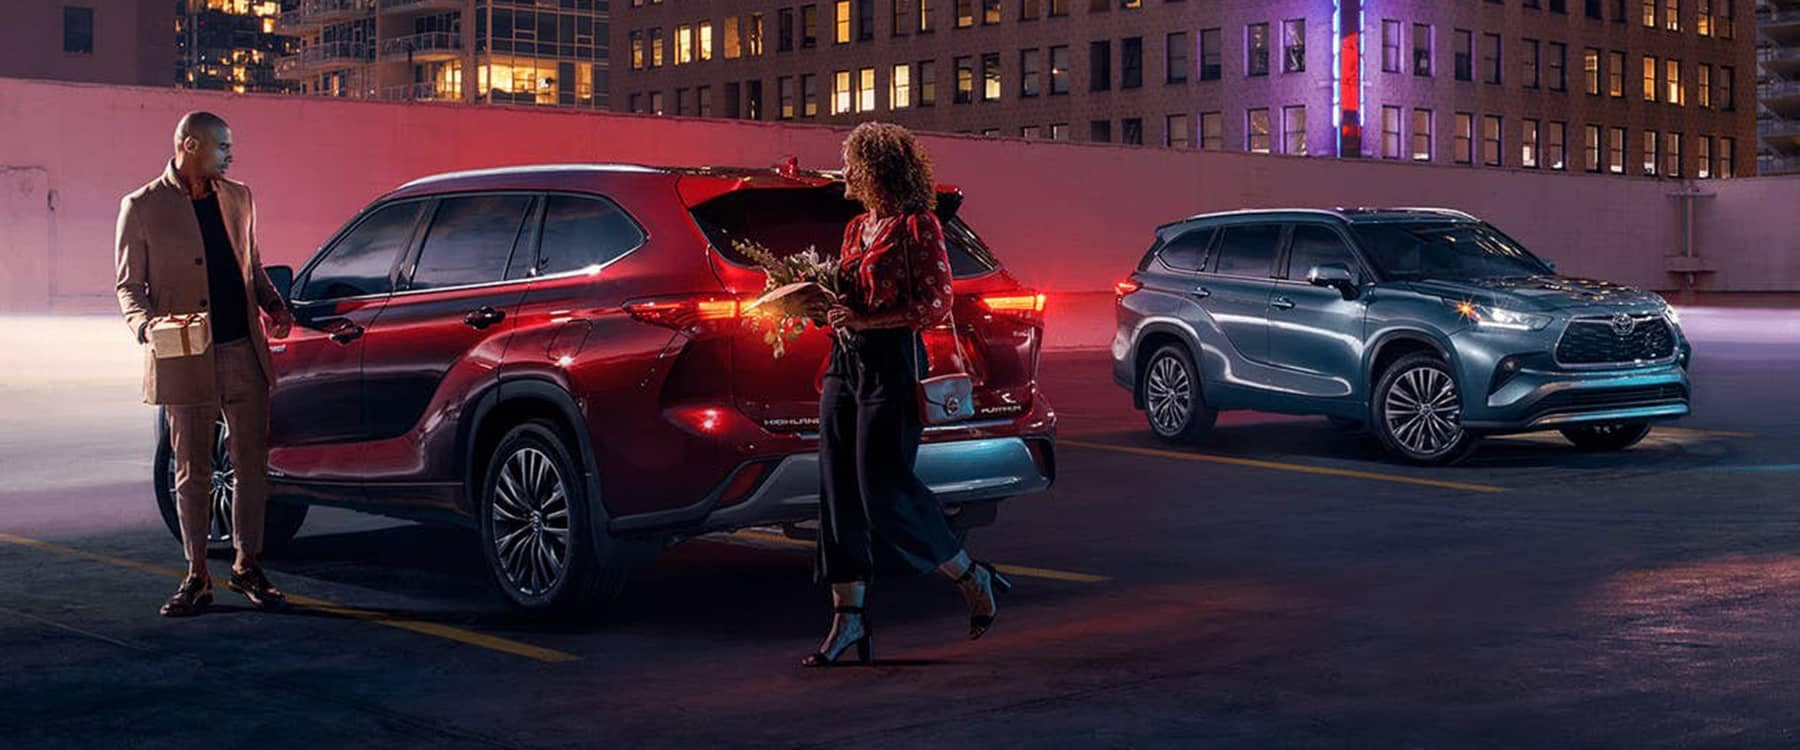 2021 Toyota Highlander Hybrid parked with two people with gifts